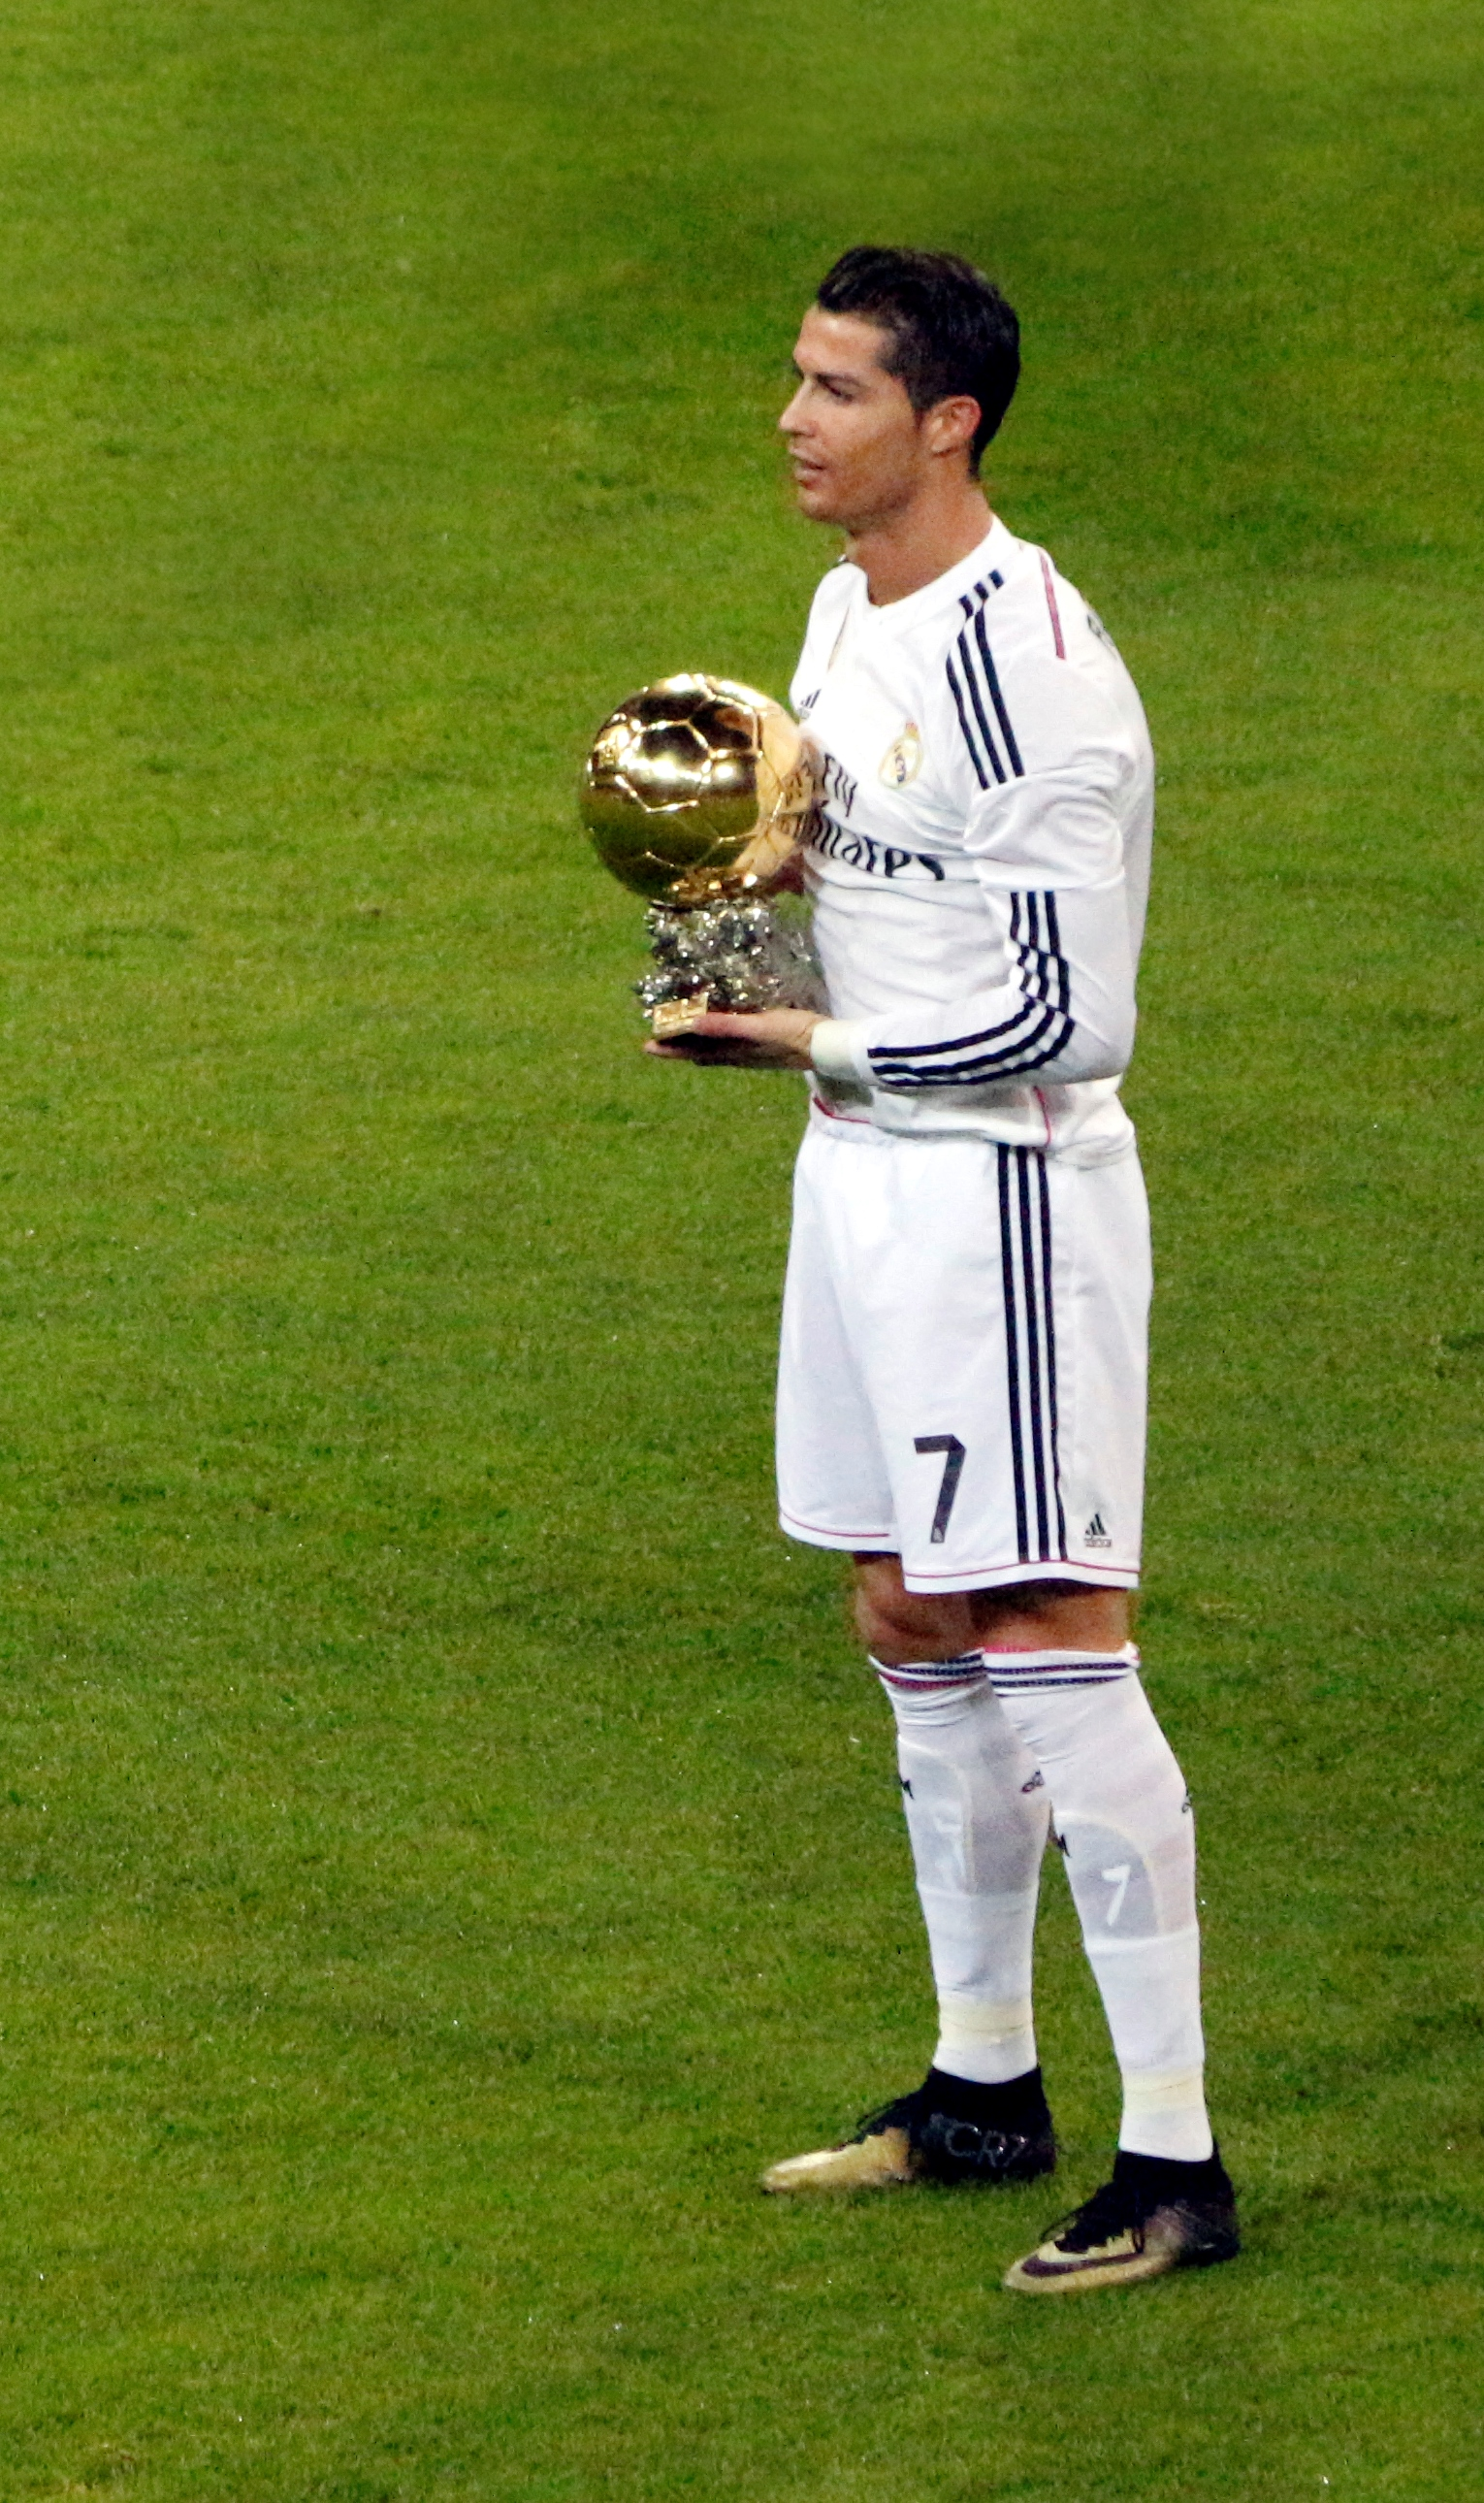 364d628f412 List of career achievements by Cristiano Ronaldo - Wikipedia